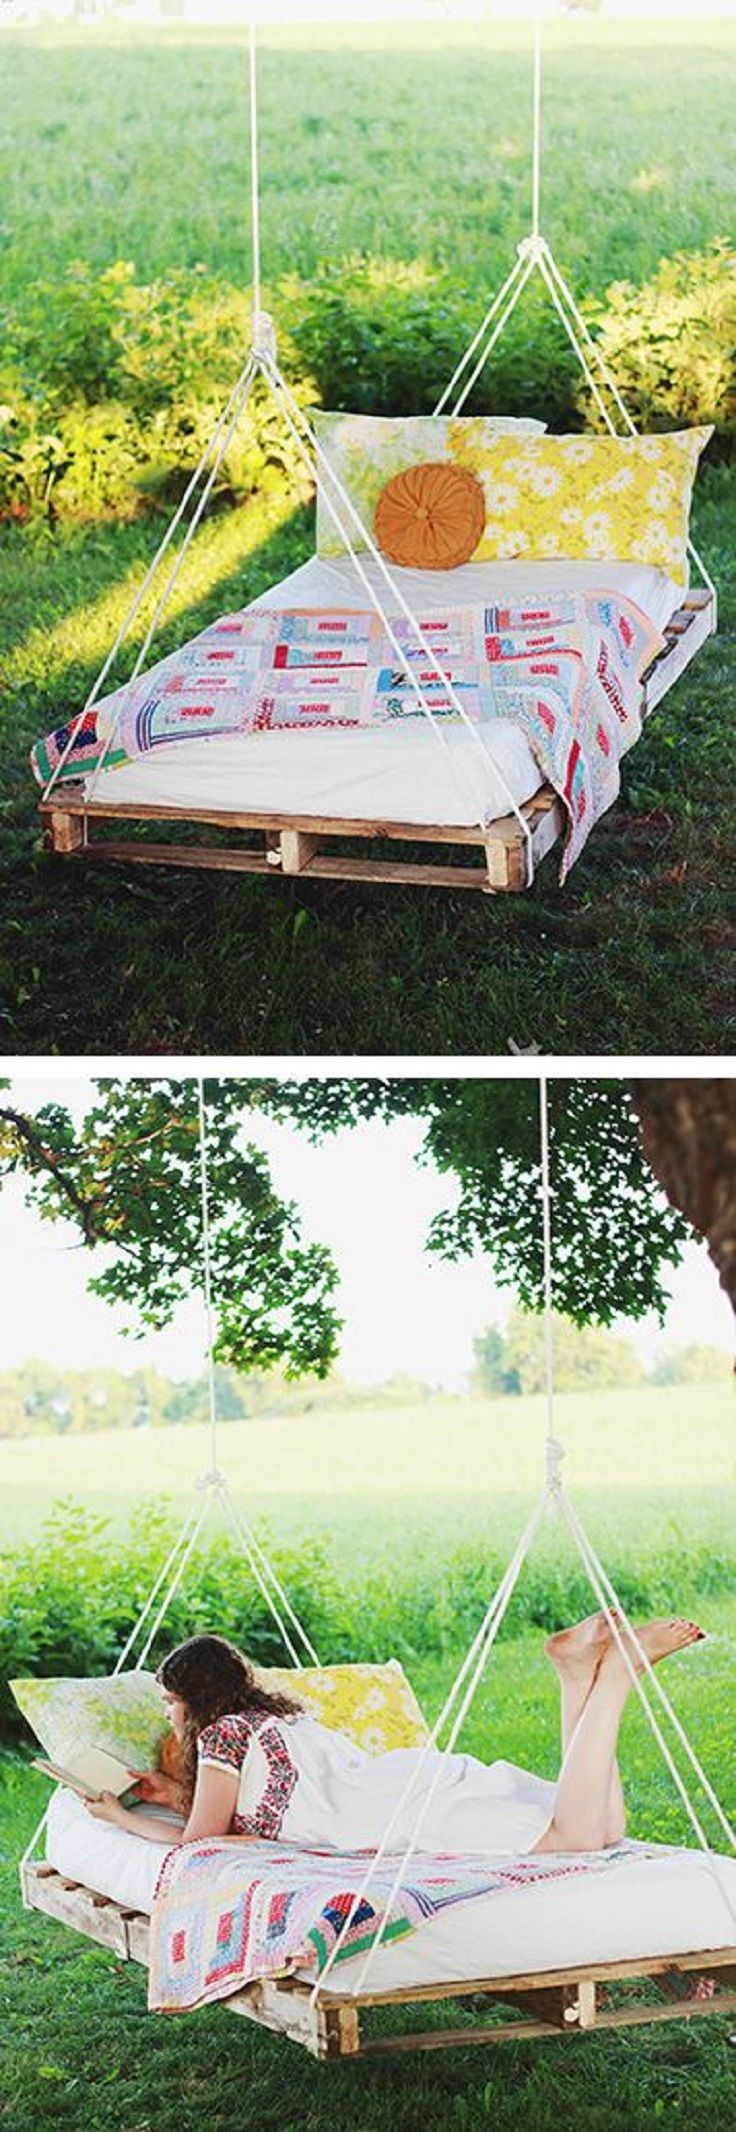 Paletten Schaukel Diy Pallet Swing Bed Can Someone Make This For My Backyard Please